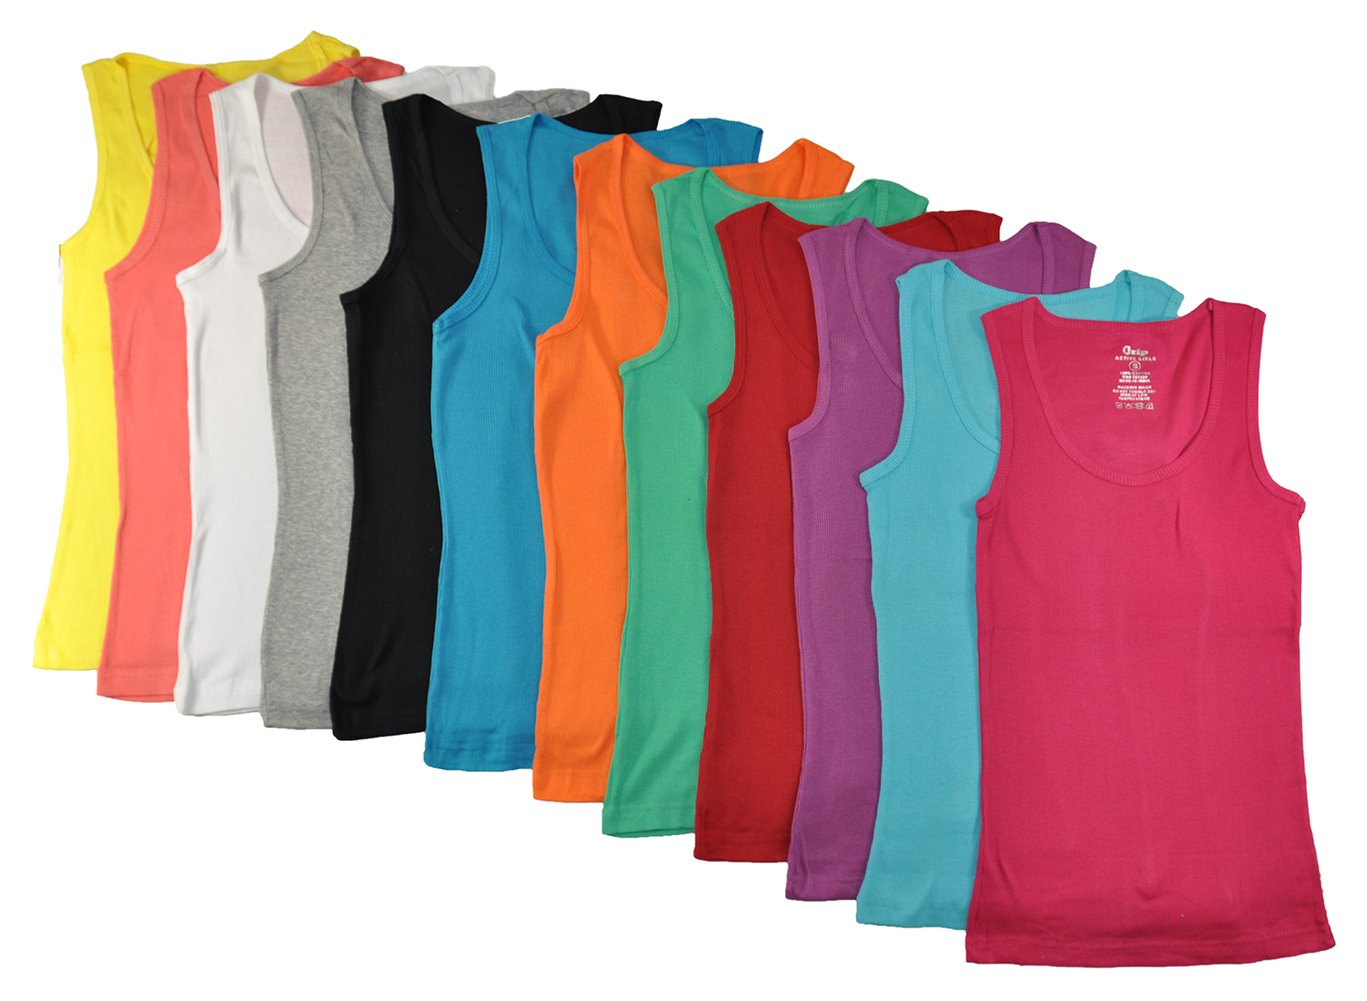 Grip Collections 12-Pack of Women's Ribbed Cotton Muscle Tank Tops, Large by Grip Collections (Image #1)